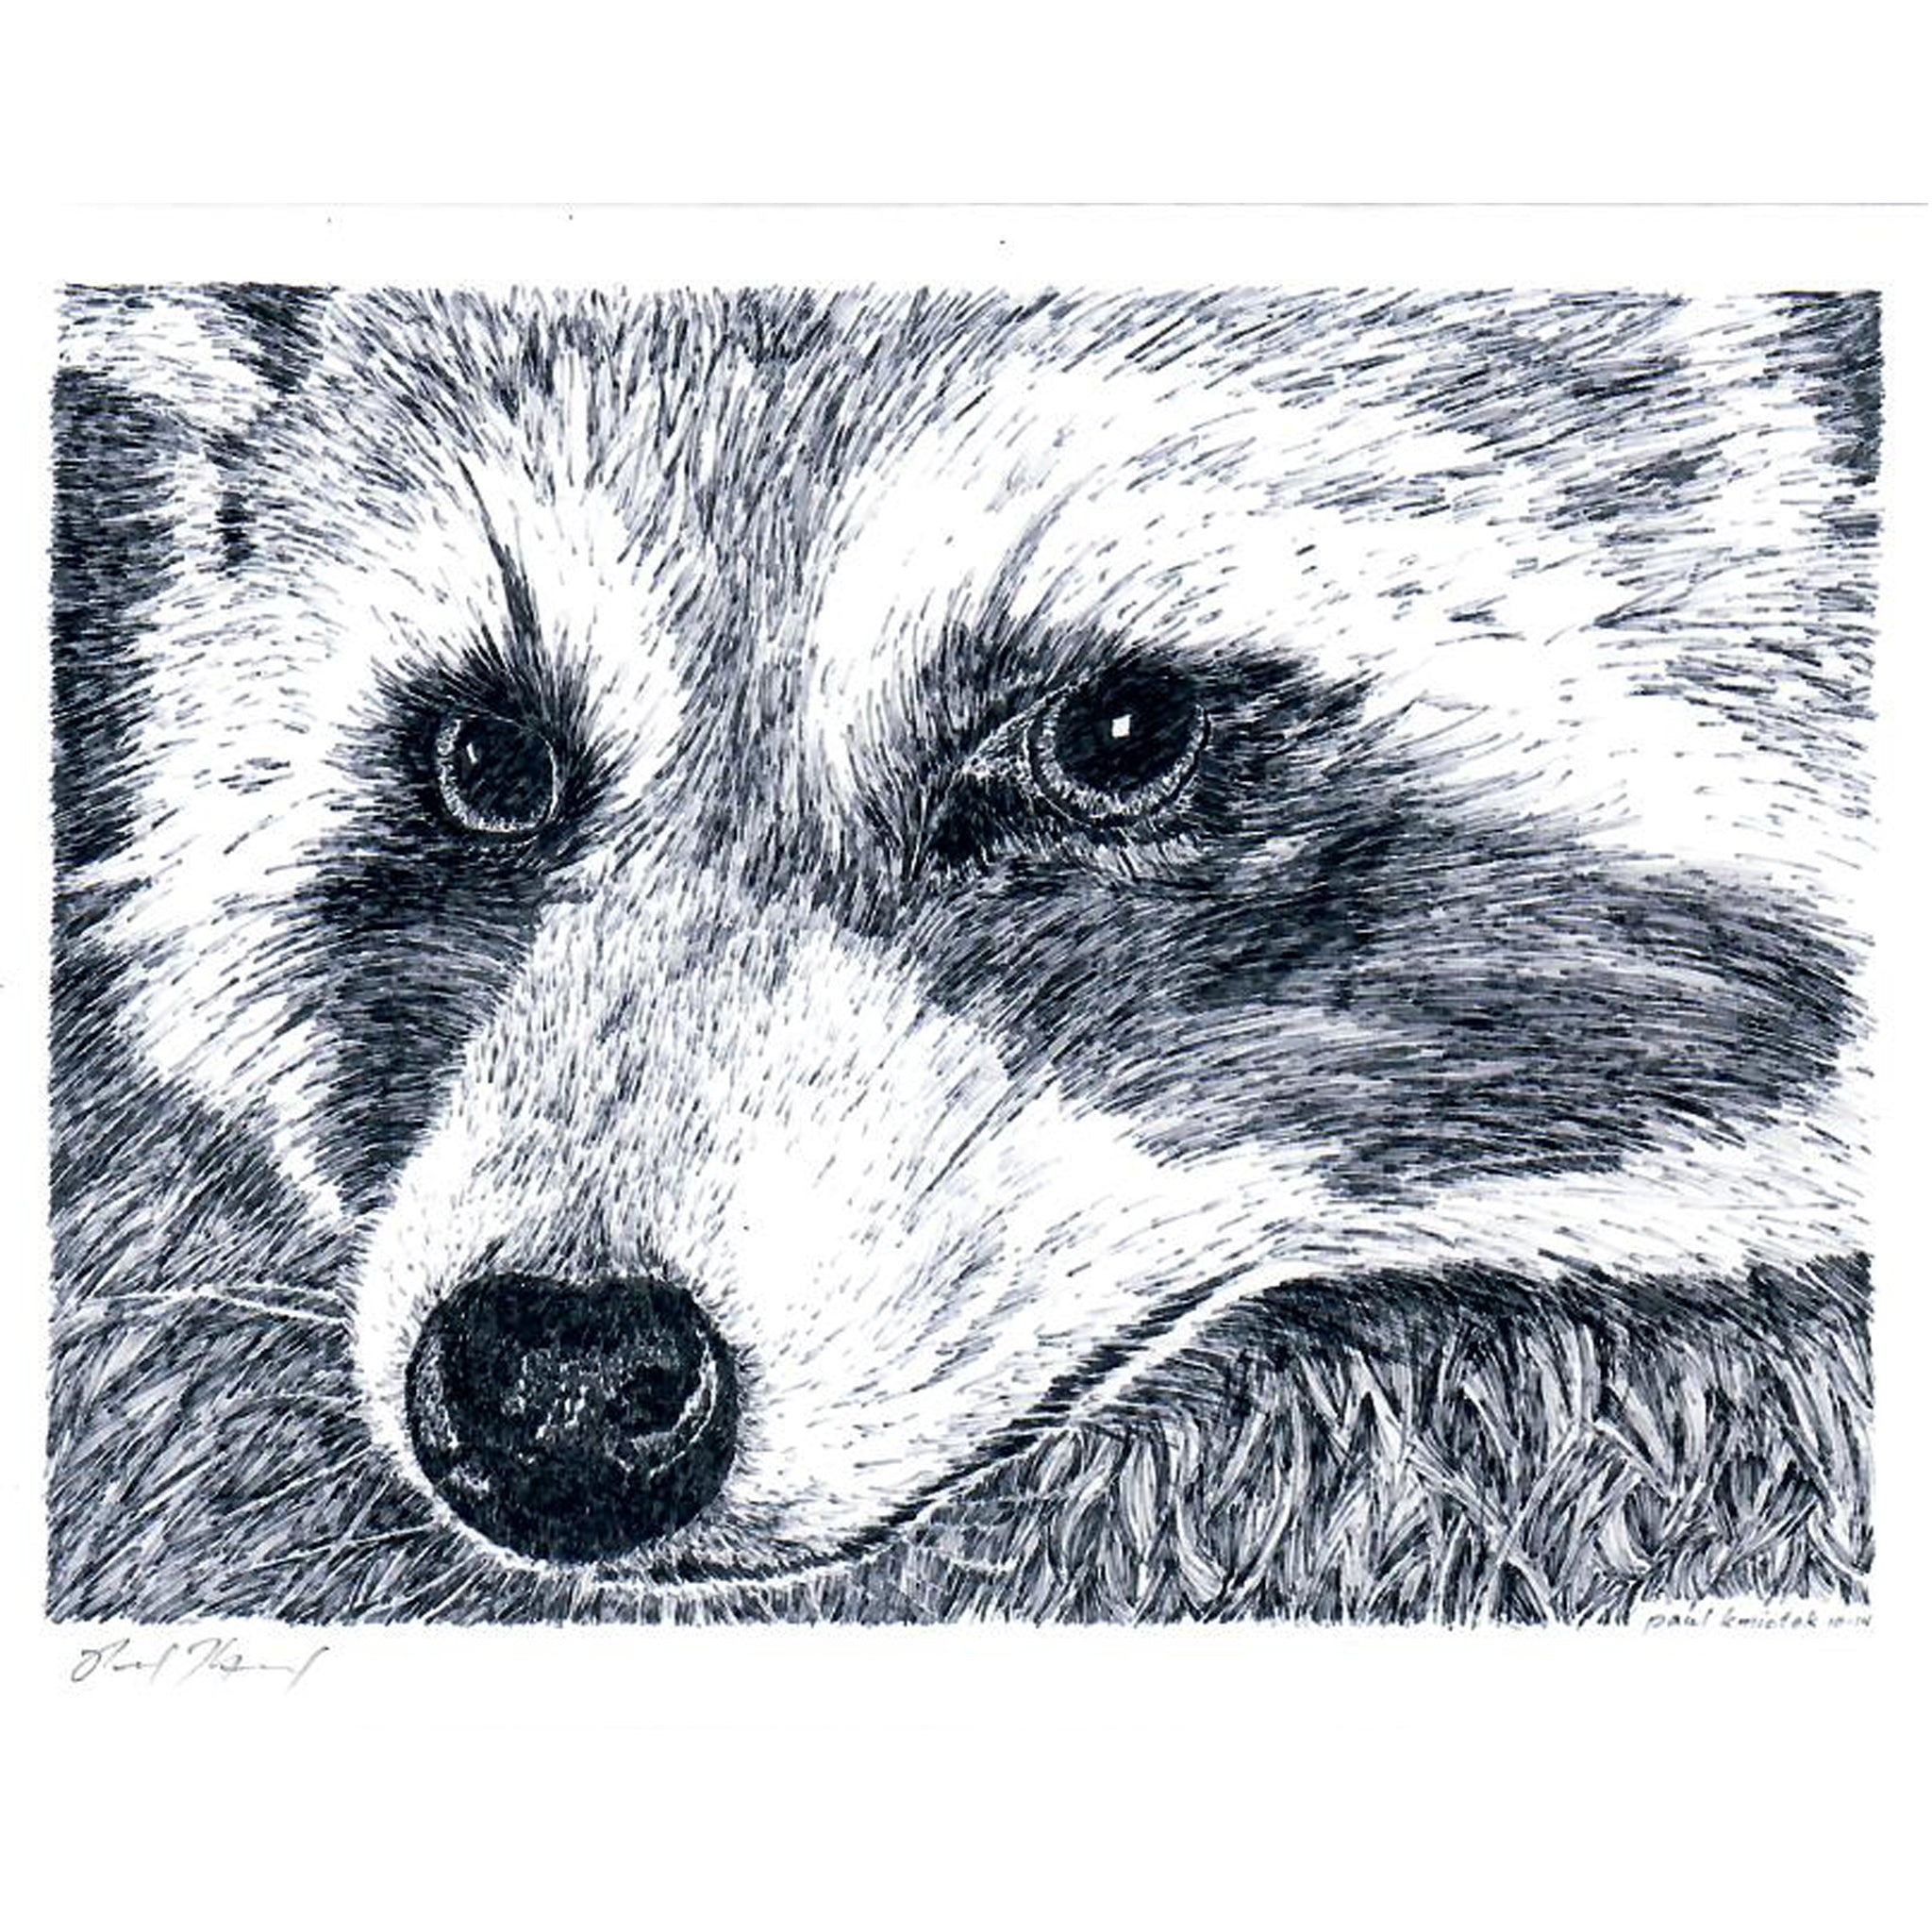 Raccoon Notecard, Pen and Ink Artwork by Paul Kmiotek